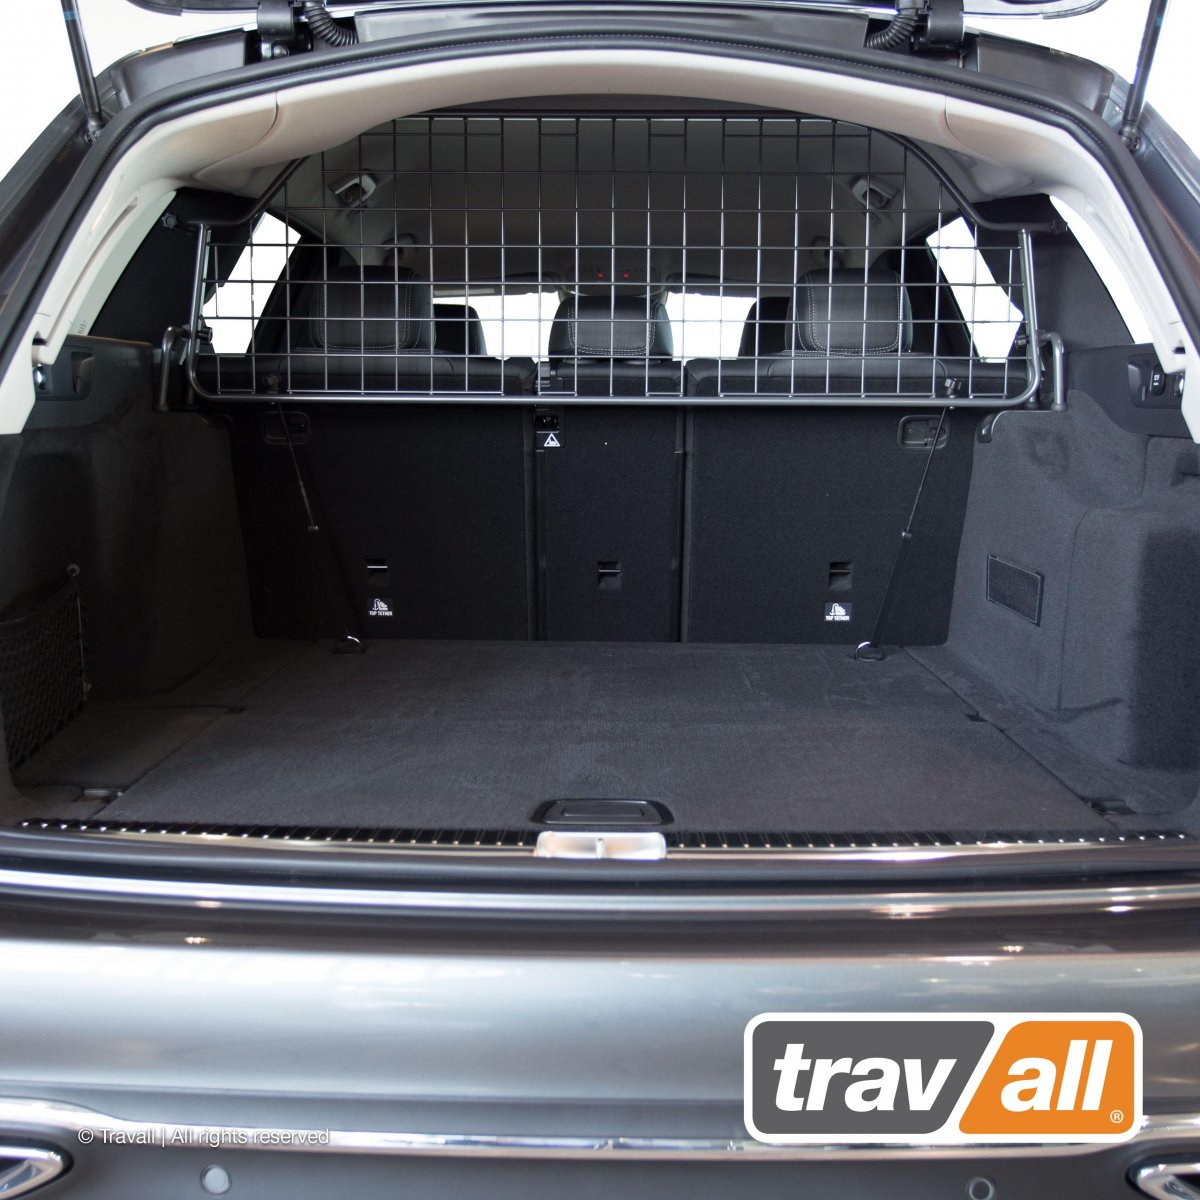 Travall®GUARD voor Mercedes Benz E-Klasse Stationwagon (2016 >)